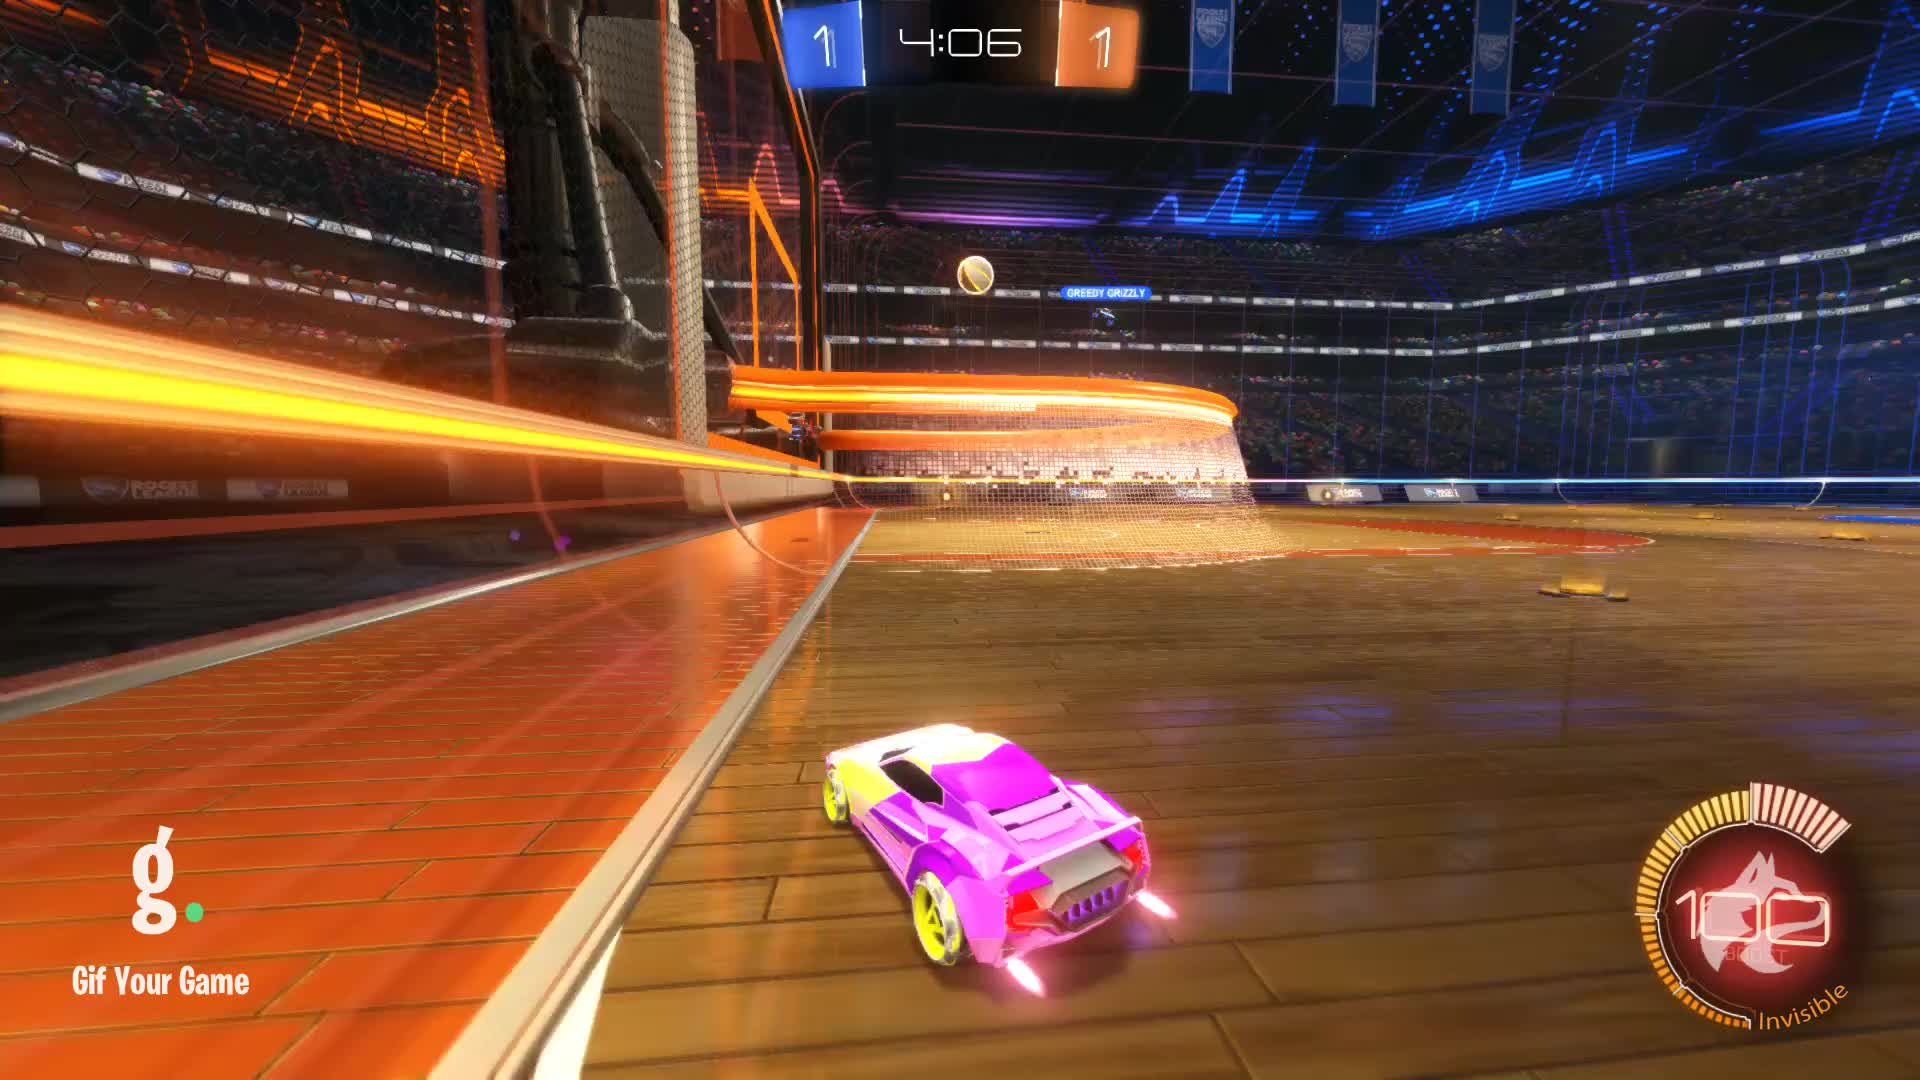 Gif Your Game, GifYourGame, Goal, Invisible, Rocket League, RocketLeague, Goal 3: Invisible GIFs